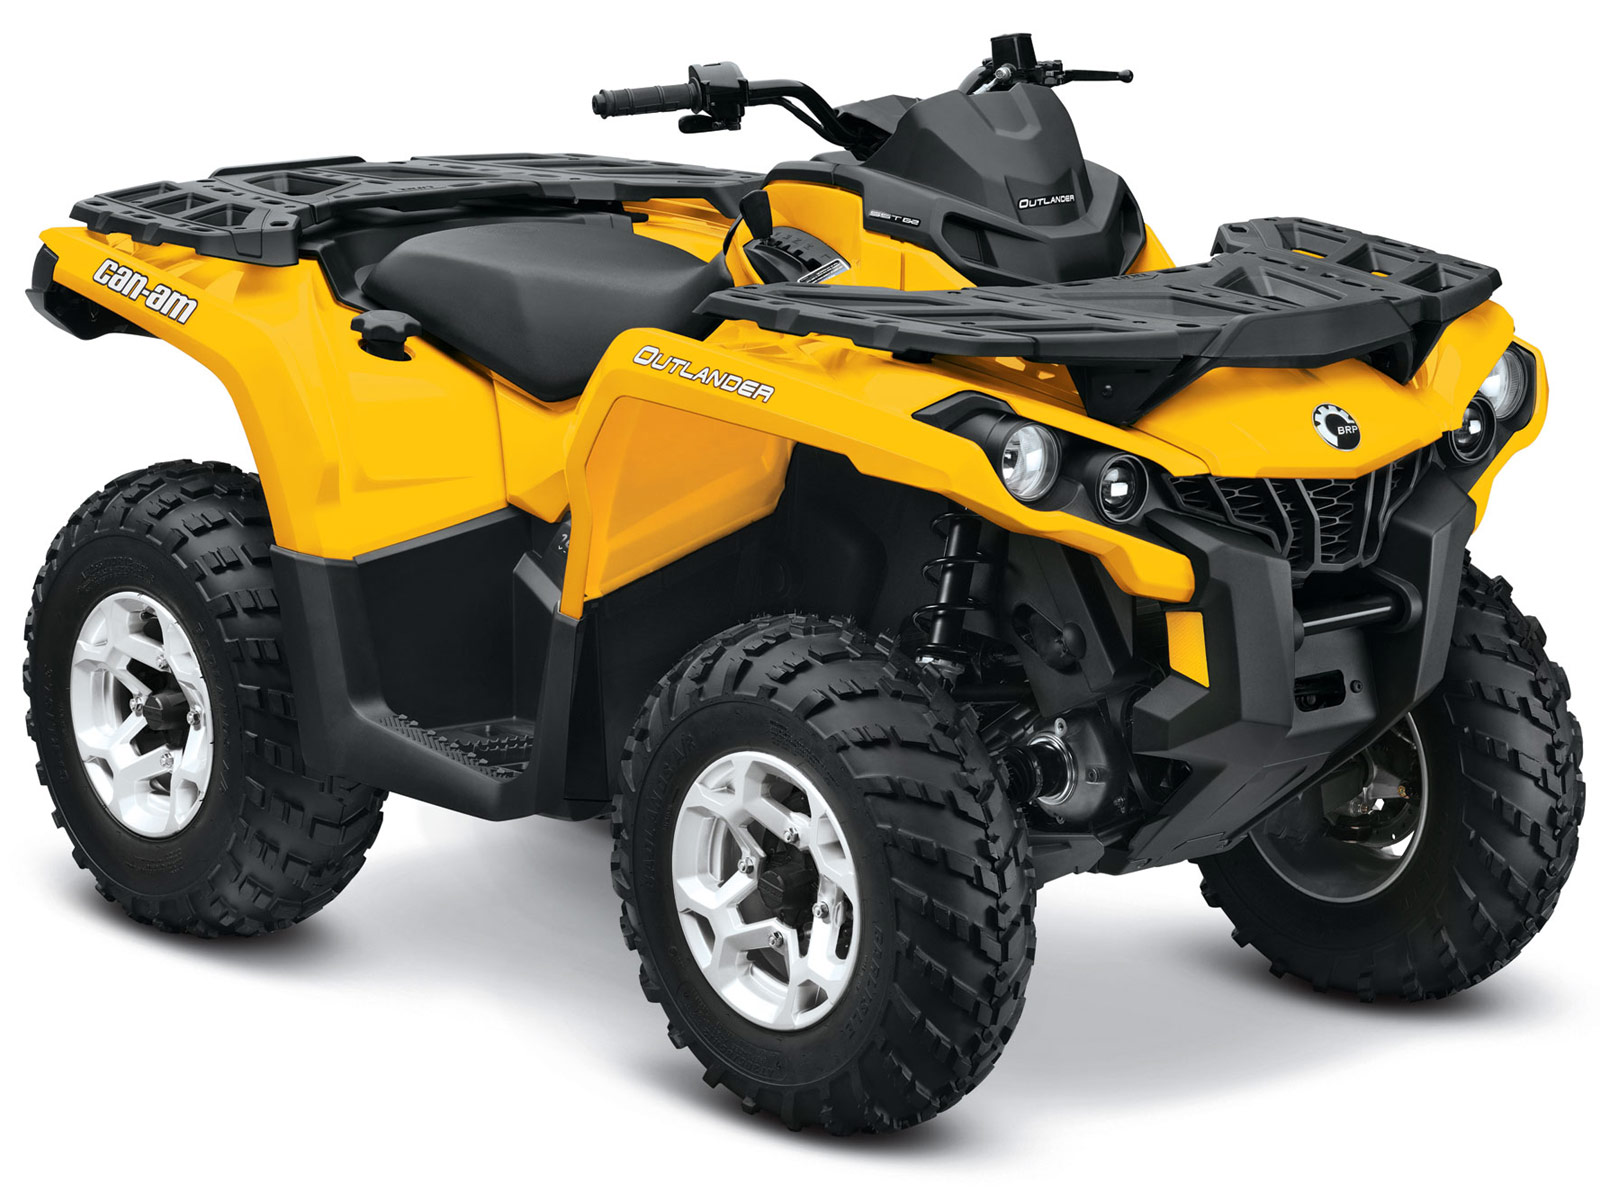 Outlander DPS 1000 | 2013 Can-Am ATV Pictures |